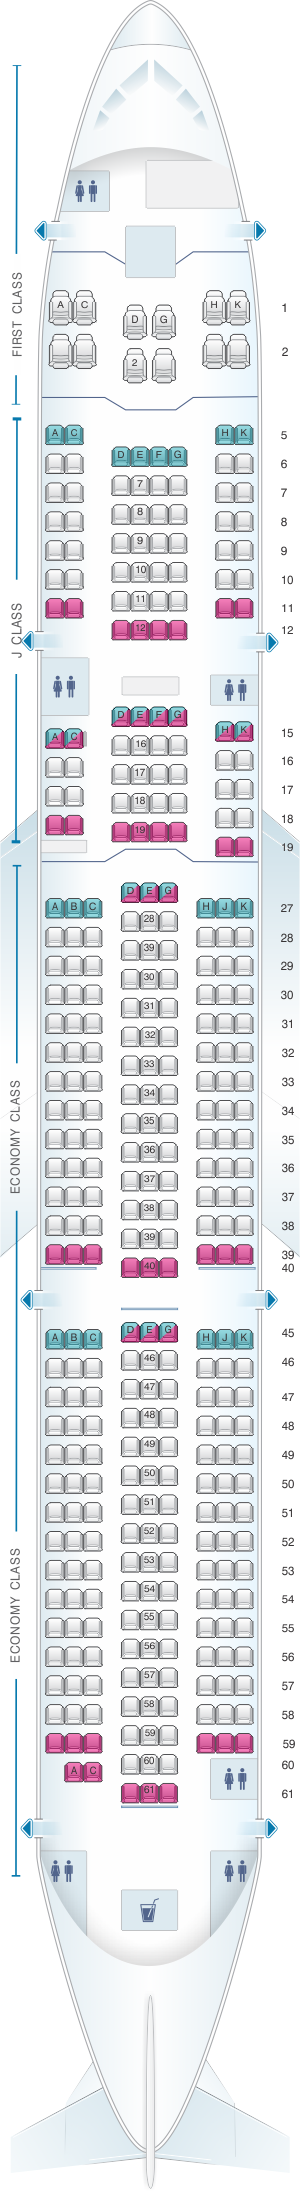 Seat map for Japan Airlines Airbus A350 900